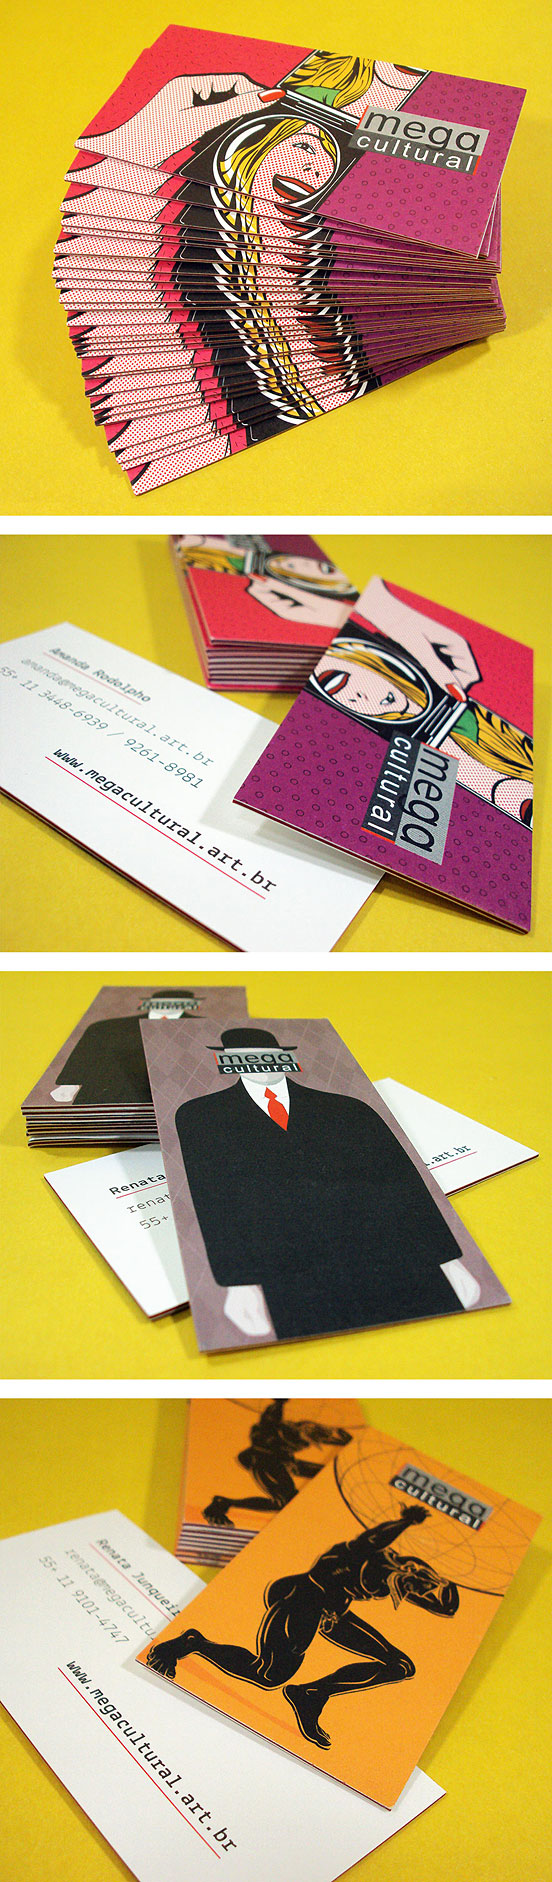 mega cultural business cards l1 25 Illustration Based Business Card Designs